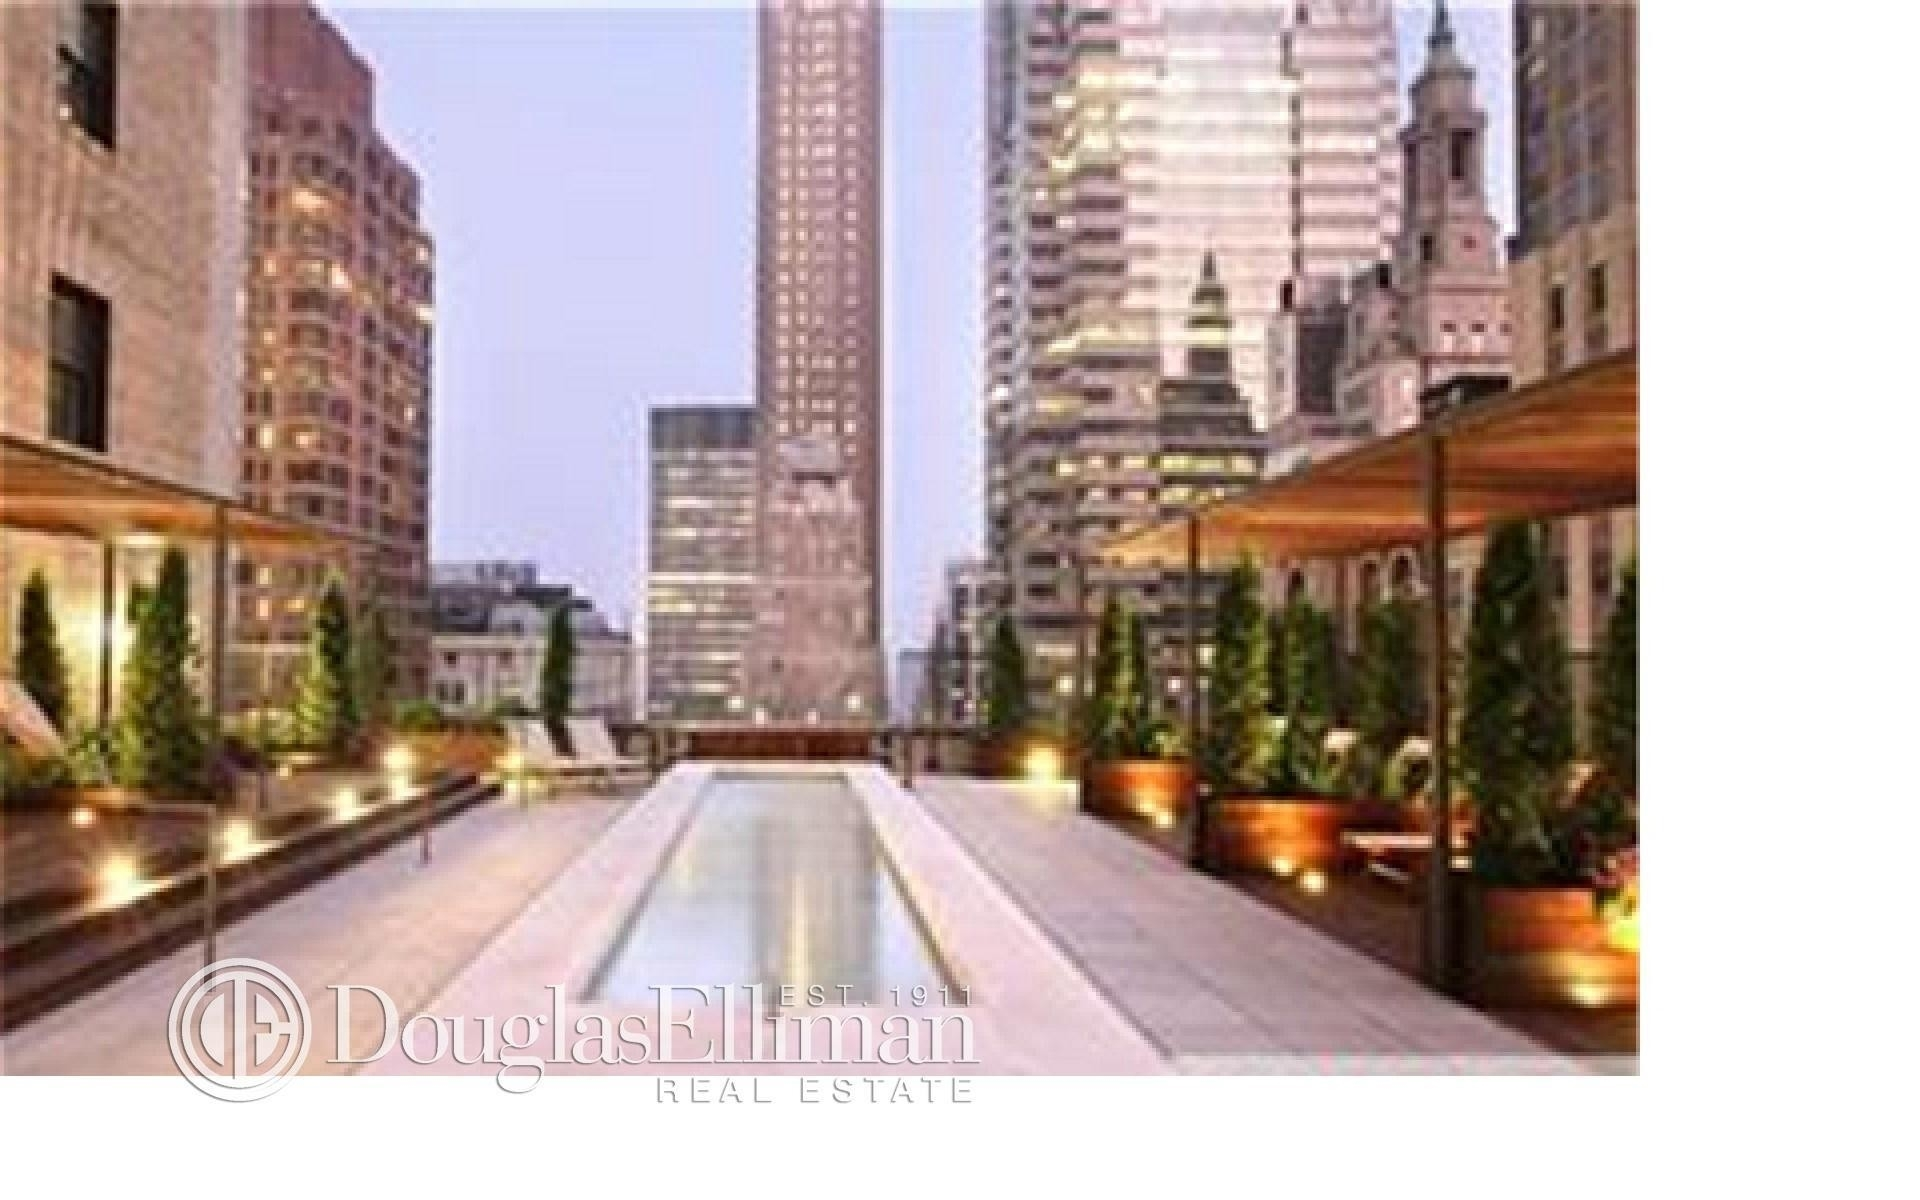 10. Condominiums at 20 Pine - The Collection, 20 Pine St, 2903 Financial District, New York, NY 10005